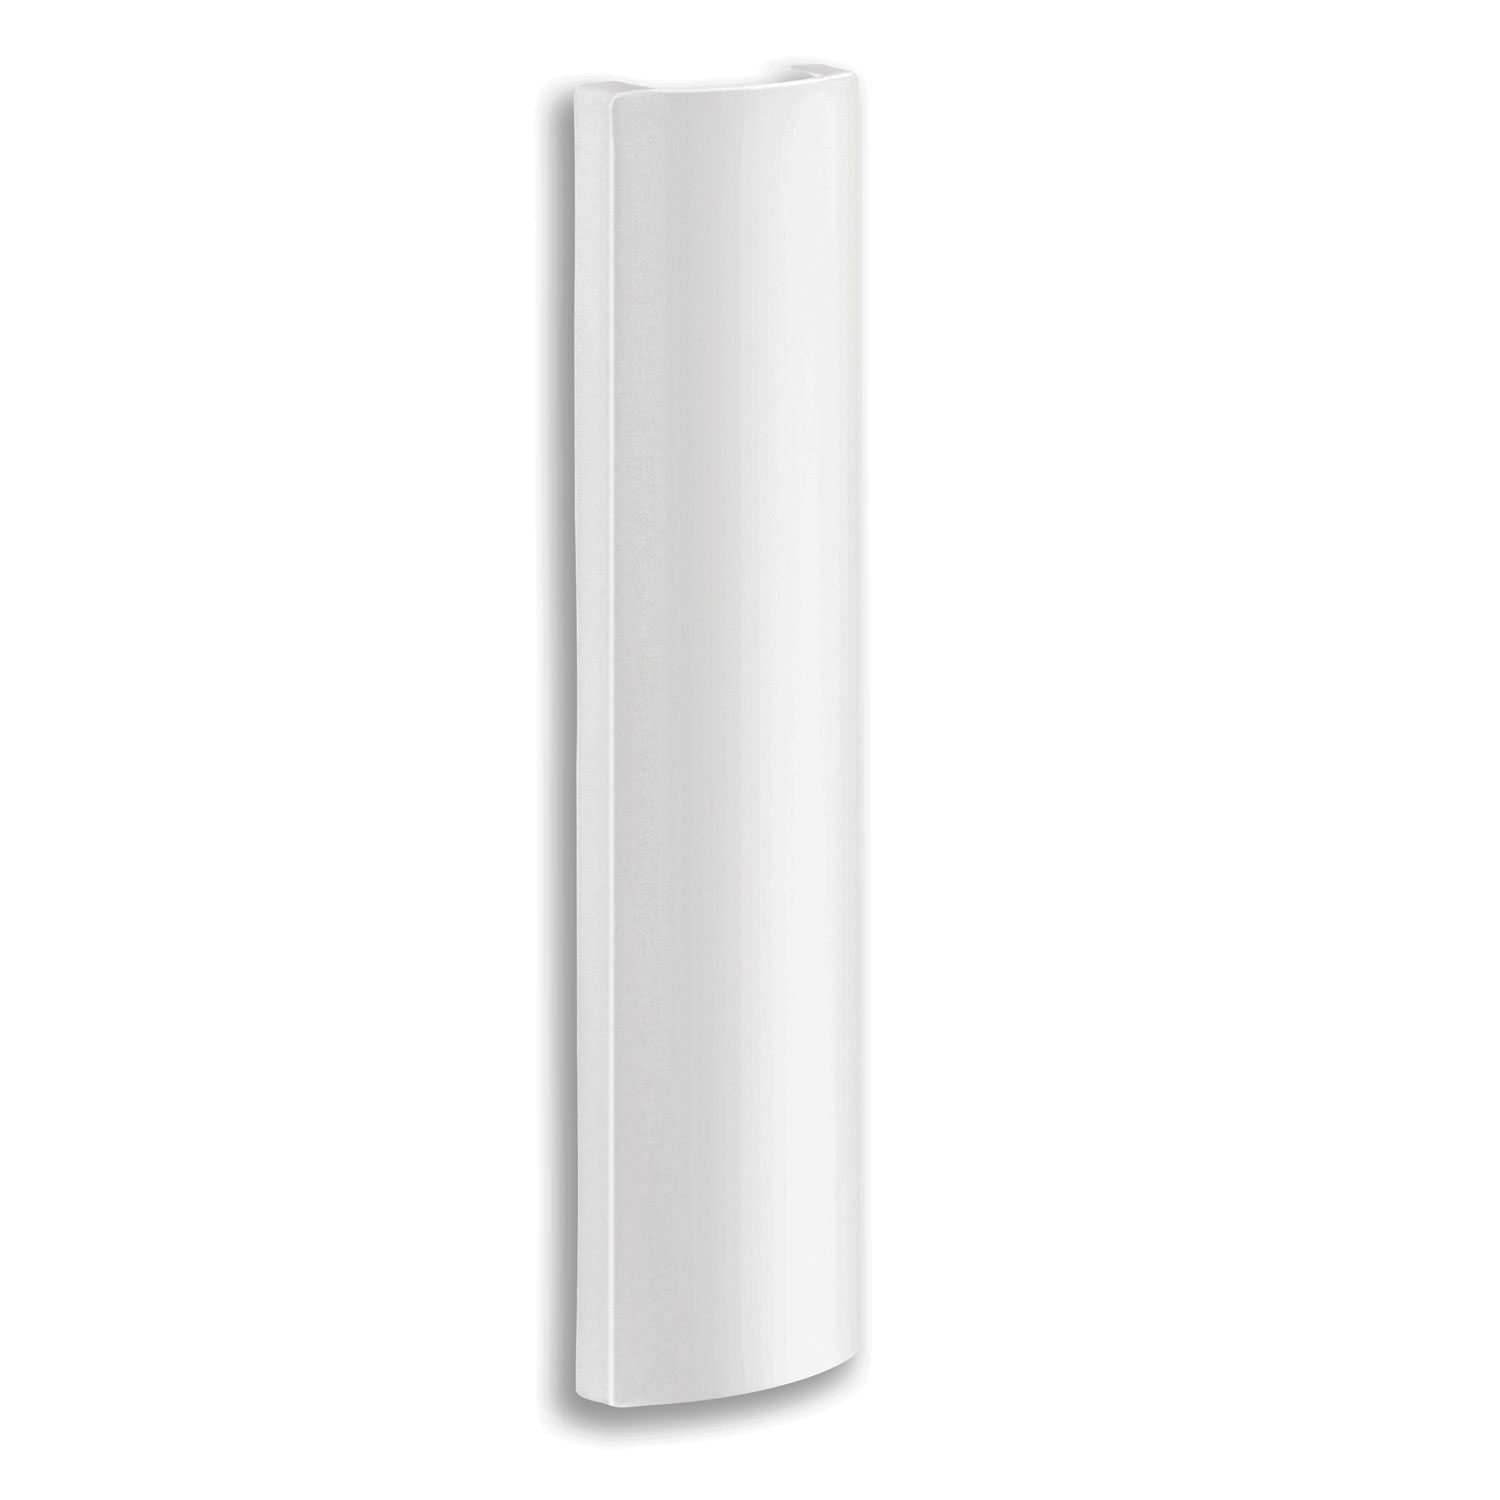 Meliconi Wire Cover Double Blanc Meuble Tv Meliconi Sur Ldlc Com # Meuble Tv Meliconi Pas Cher